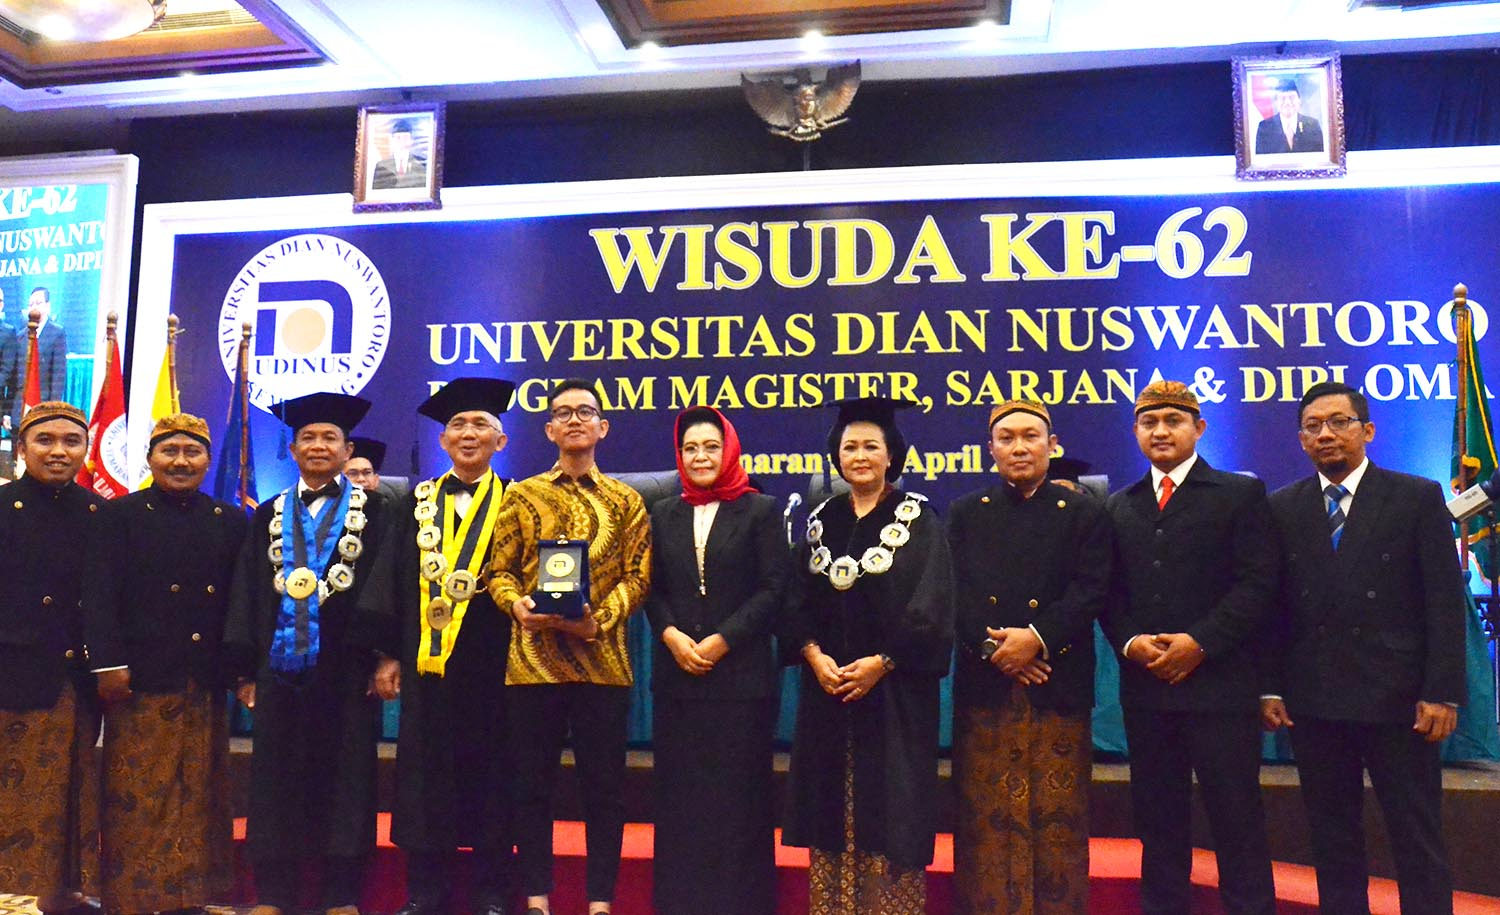 THE 62ND GRADUATION OF UDINUS